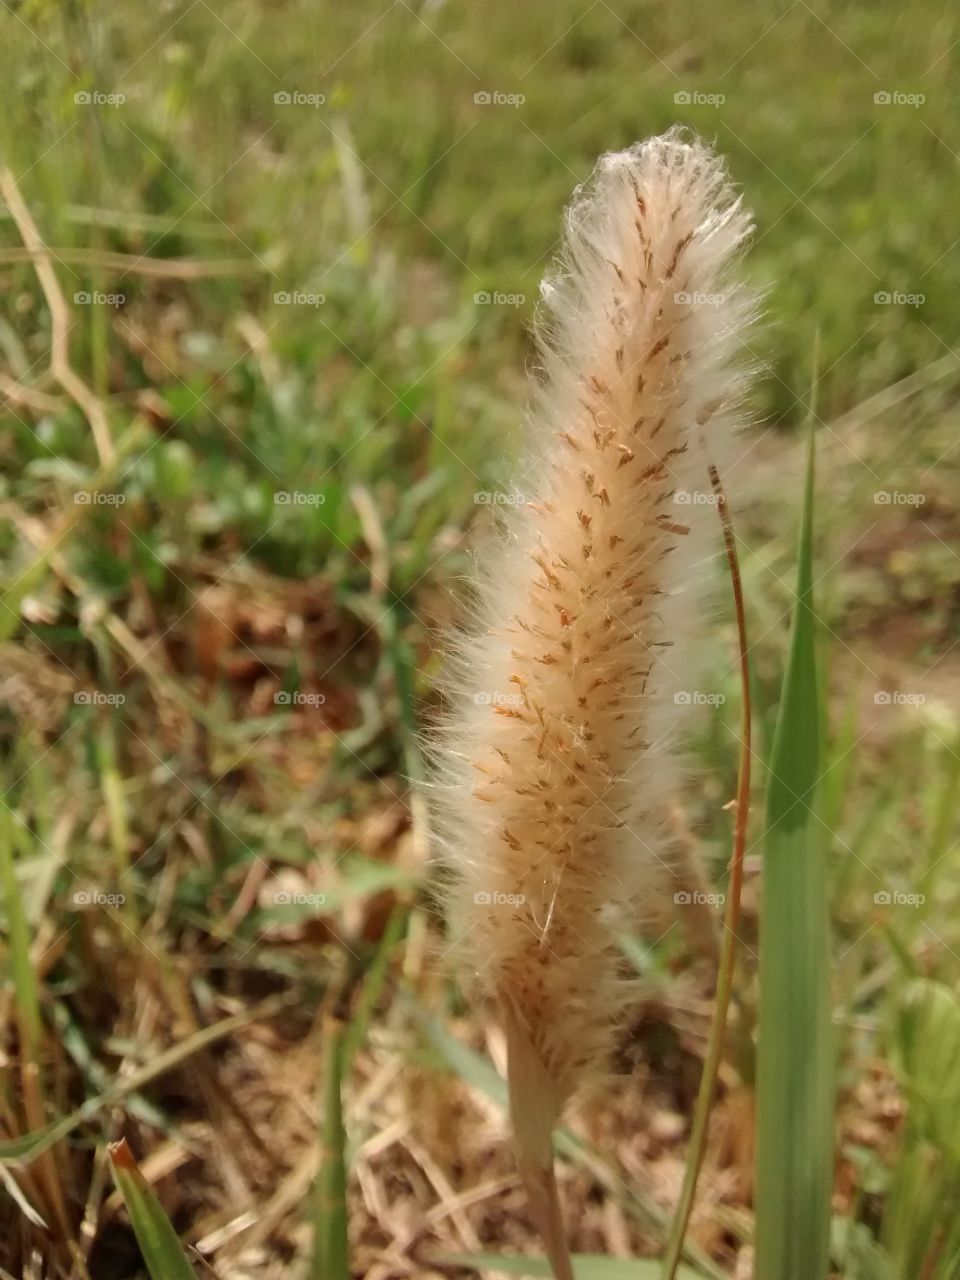 very beautiful grass looking for flower like